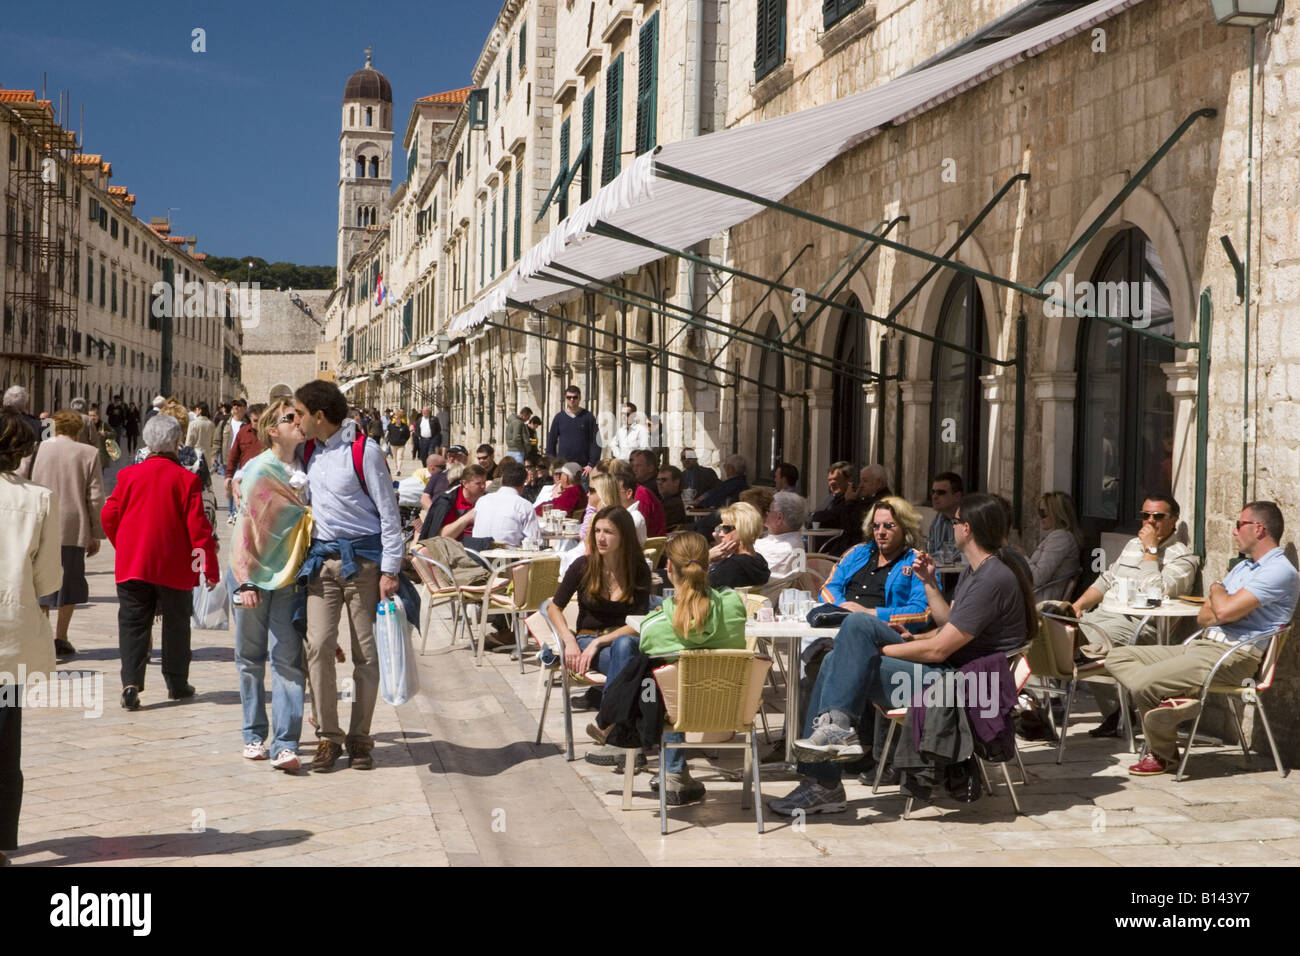 Customers at cafe with couple kissing on Stradun the main street of Dubrovnik old city Croatia - Stock Image